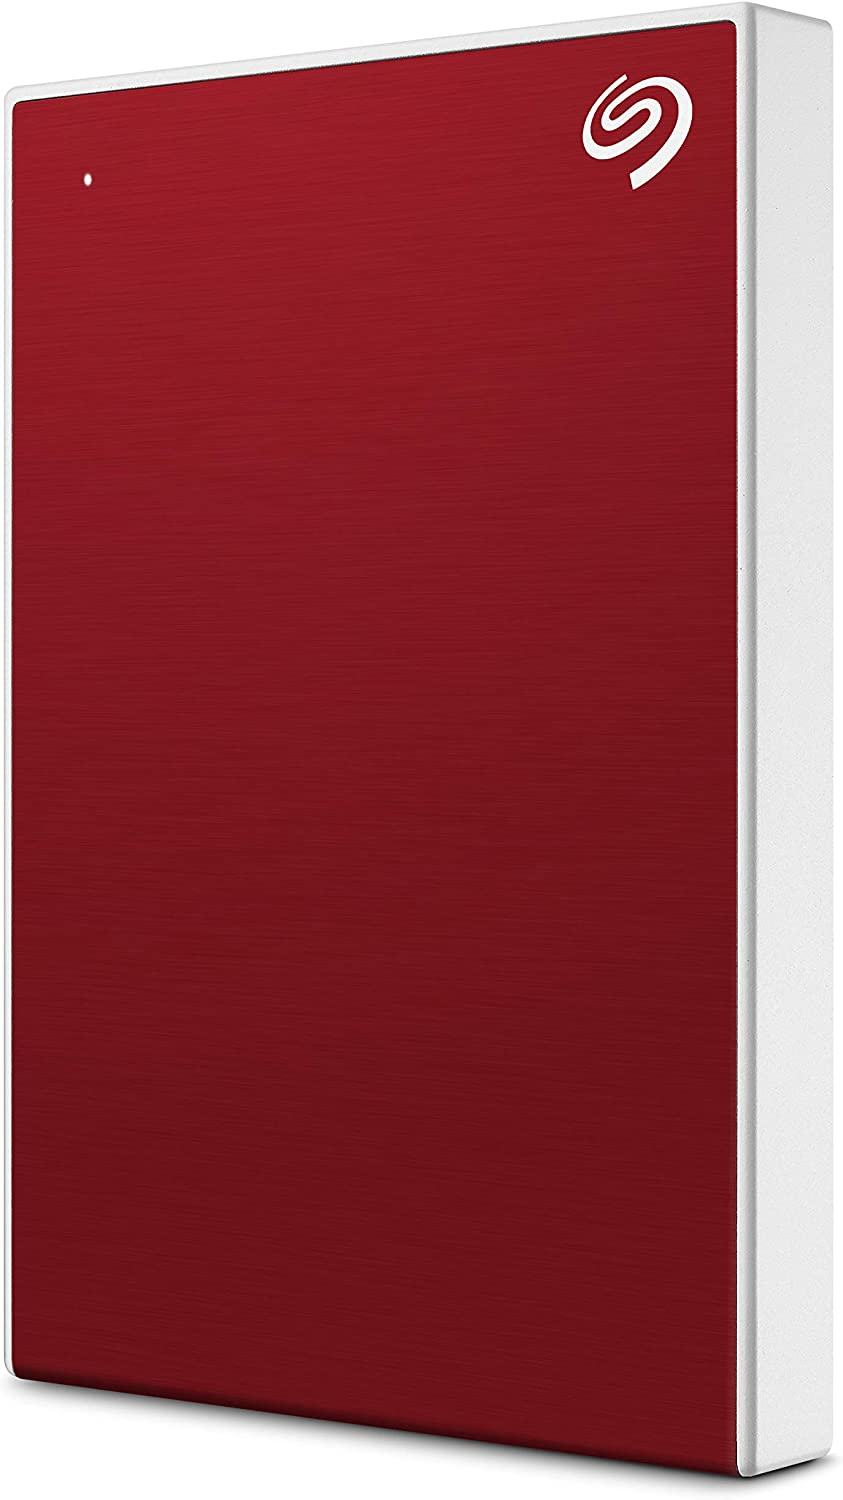 Seagate Backup Plus Slim 1TB External Hard Drive Portable HDD – Red USB 3.0 for PC Laptop and Mac, 1 year Mylio Create, 2 Months Adobe CC Photography, (STHN1000403)